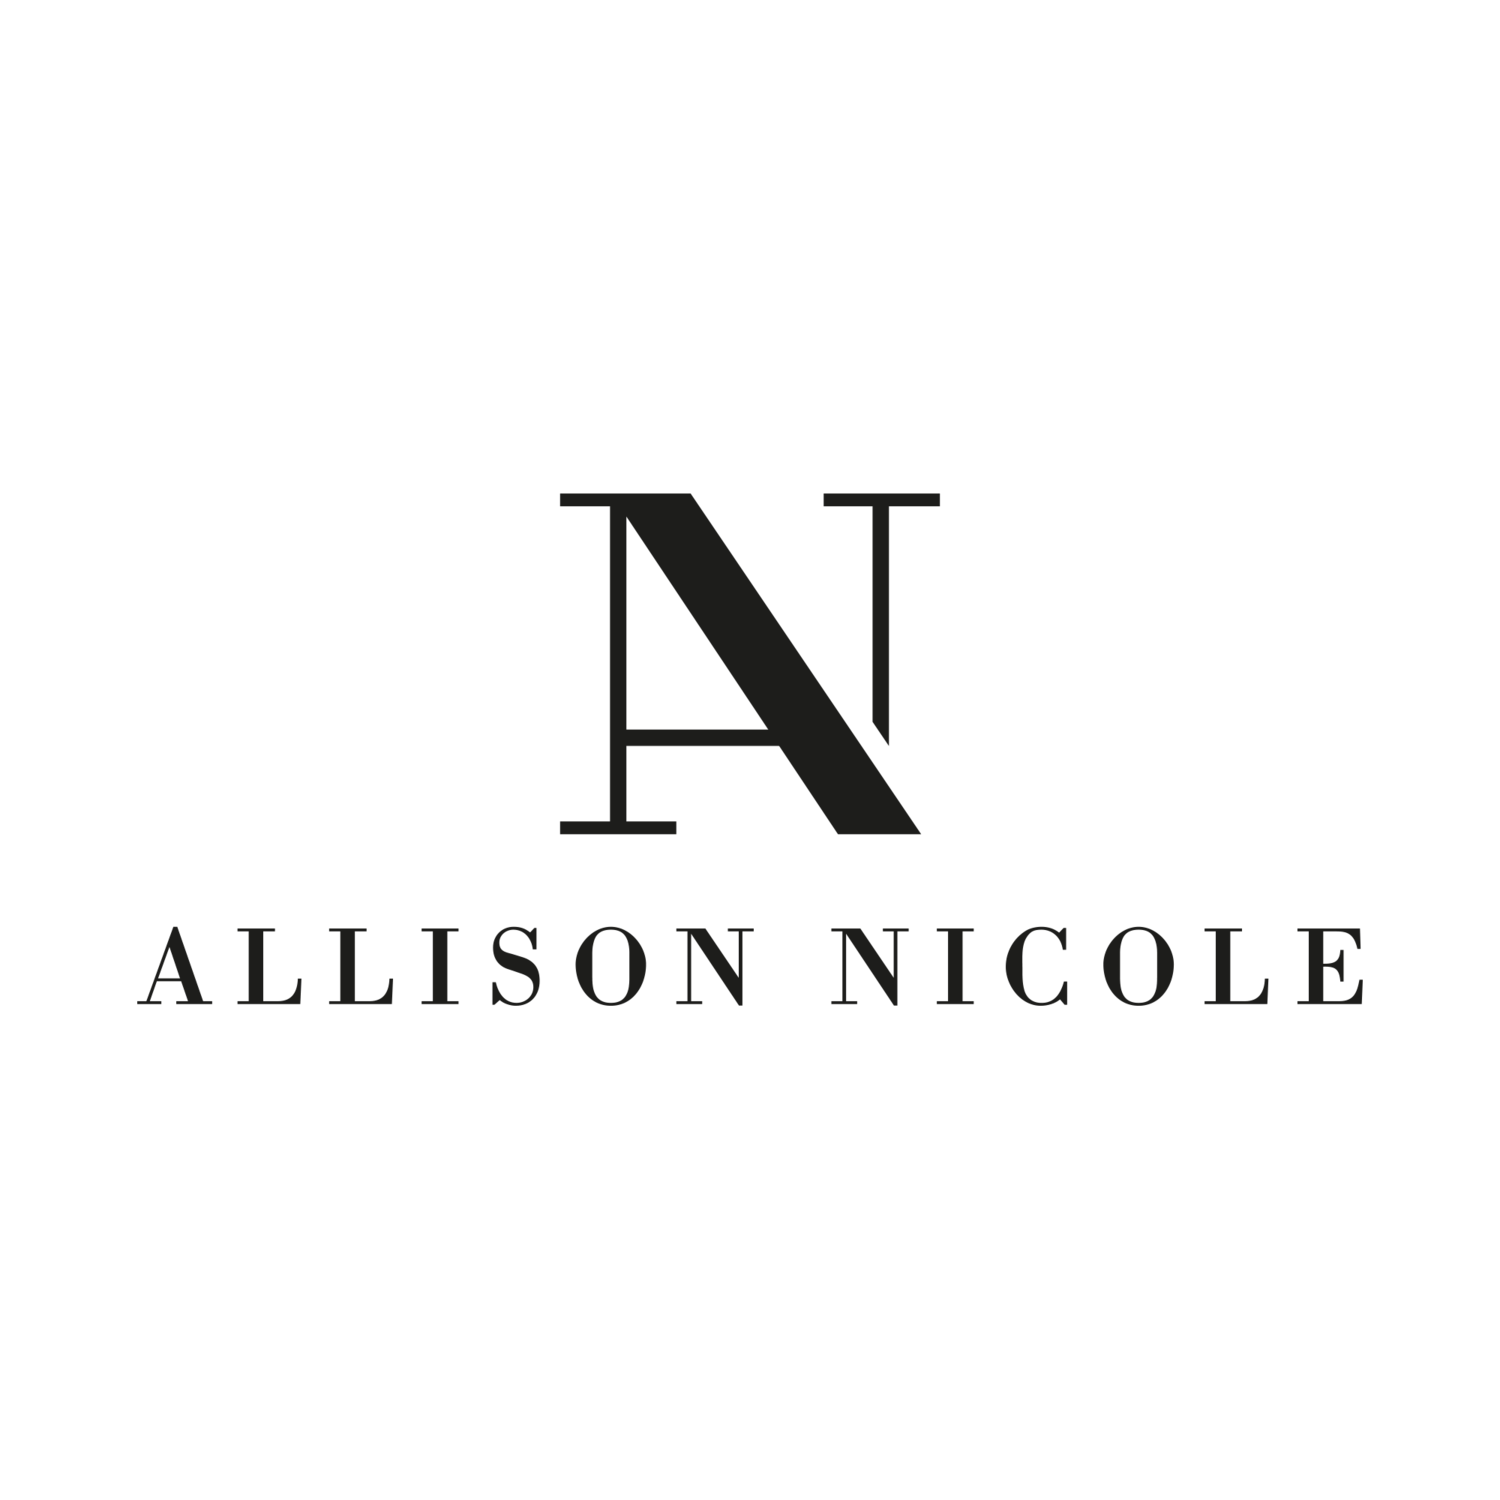 Allison Nicole Designs